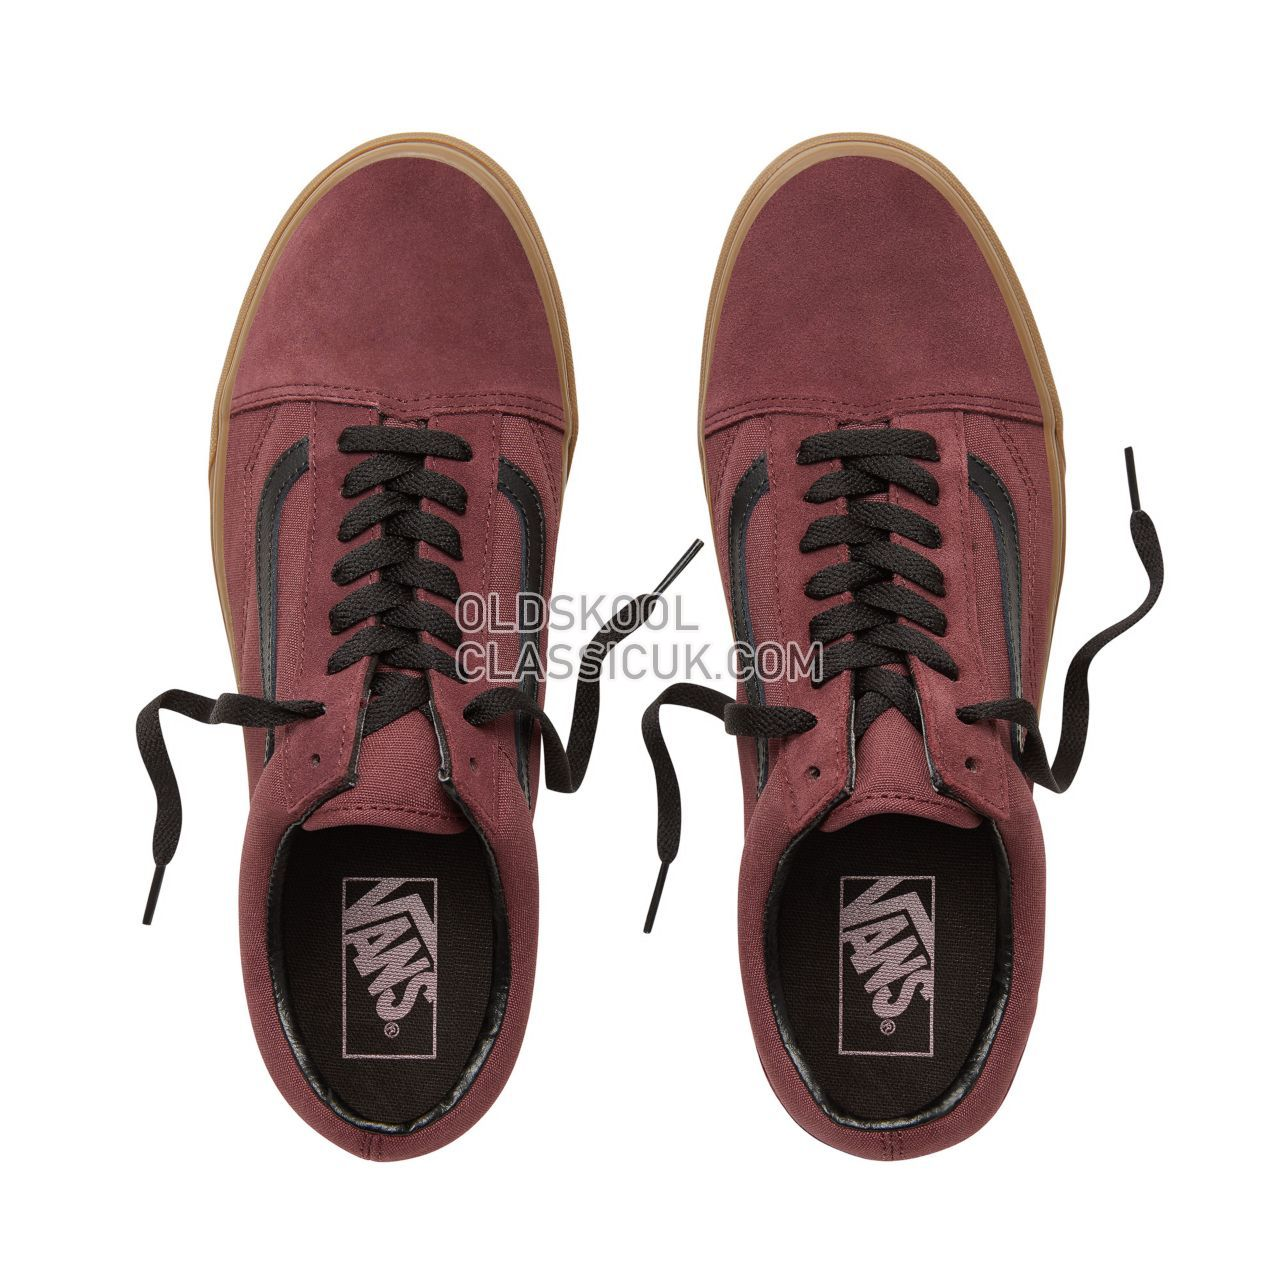 Vans Suede Gum Outsole Old Skool Sneakers Mens Womens Unisex (Gum Outsole) Catawba Grape/Black VA38G1U5A Shoes